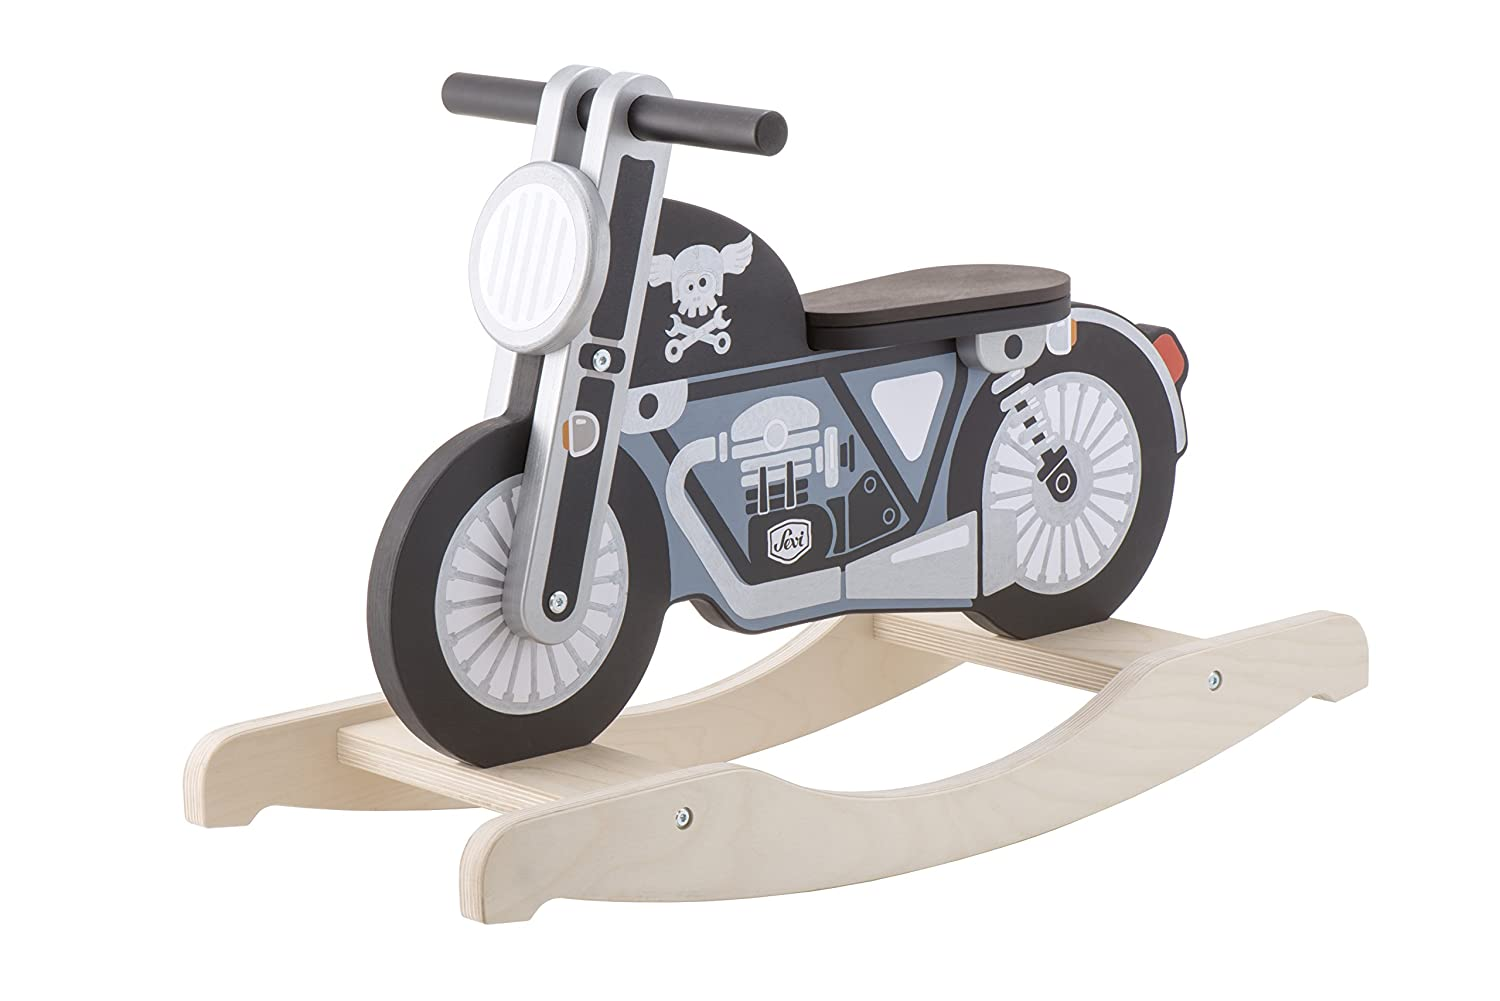 Trudi Sevi Rocking Bike, 82990, 72x46x28 cm Trudi Spa